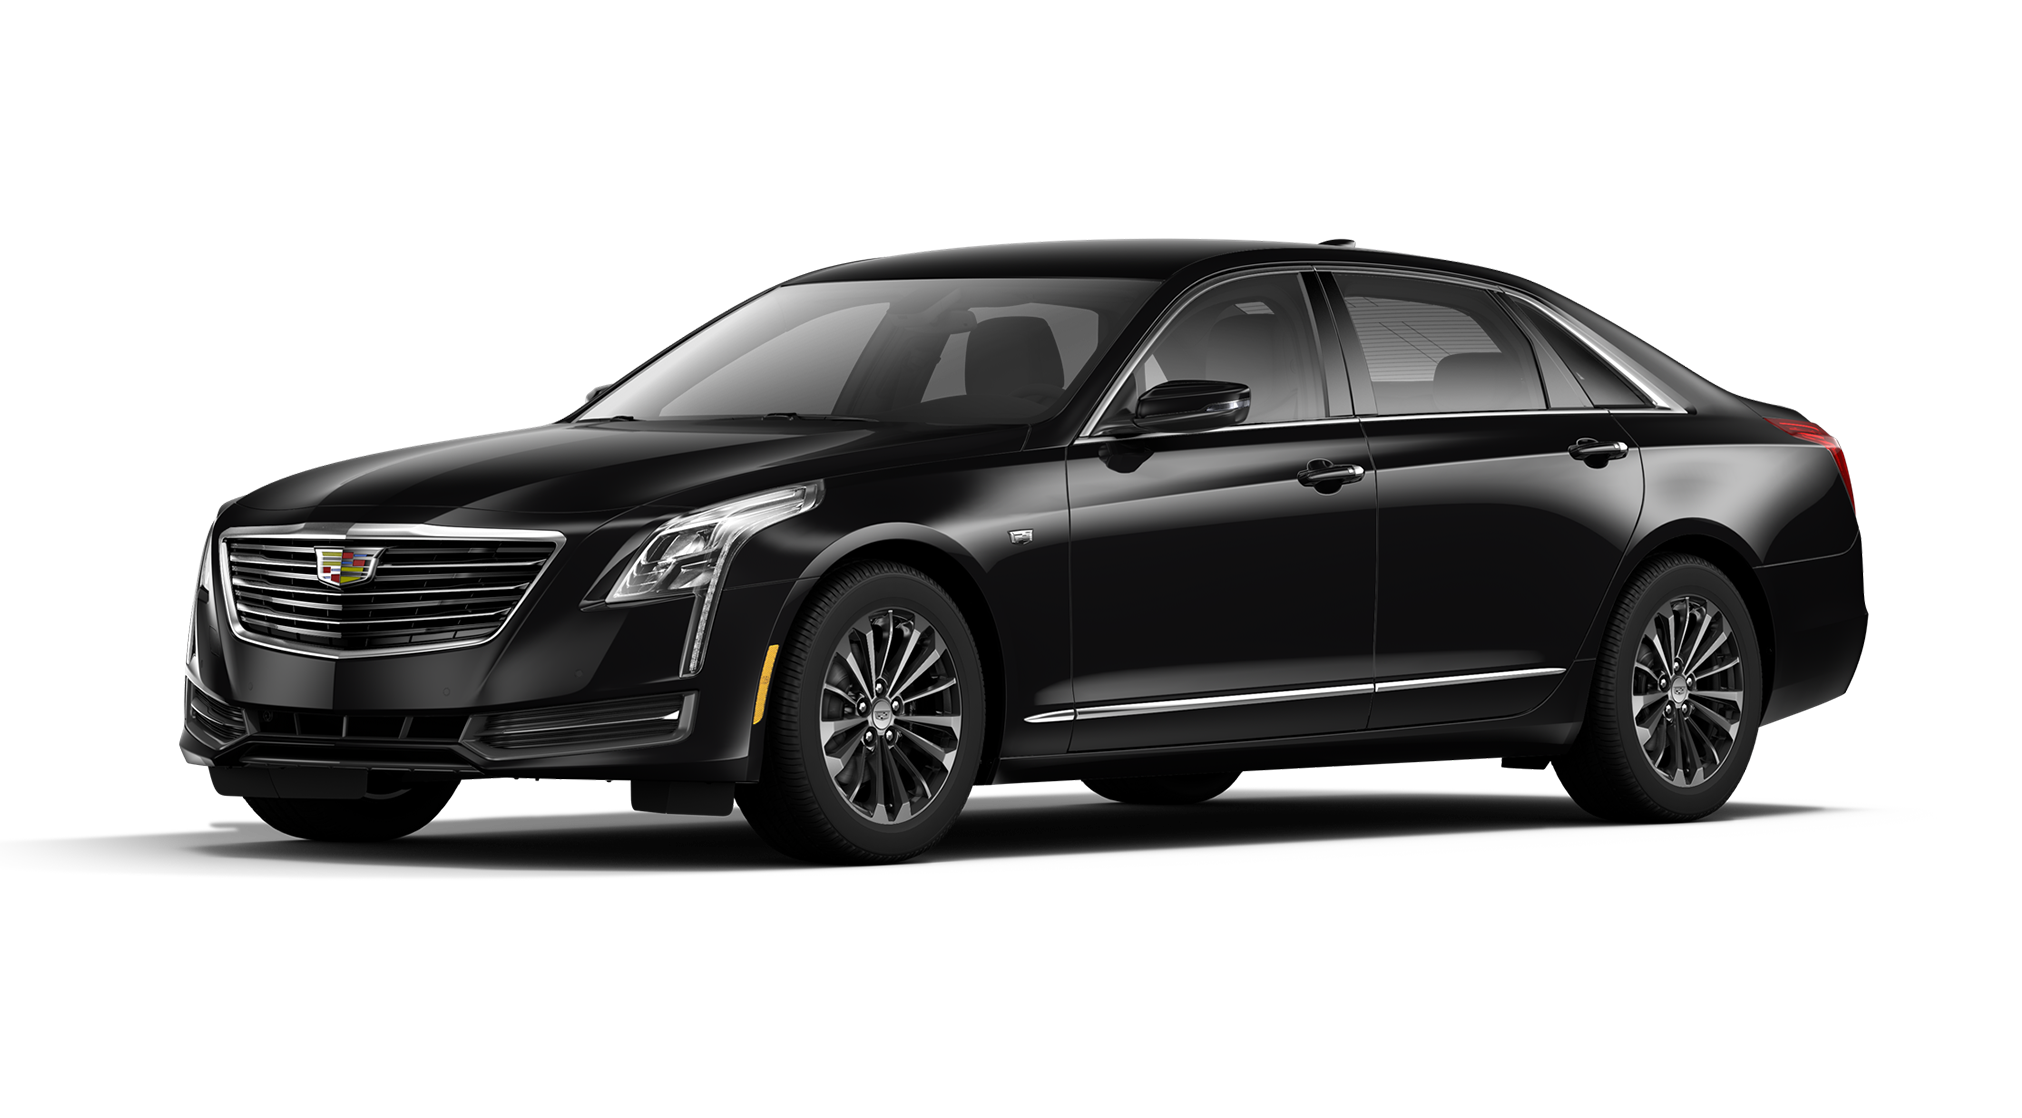 2017 Cadillac CT6 Black Raven